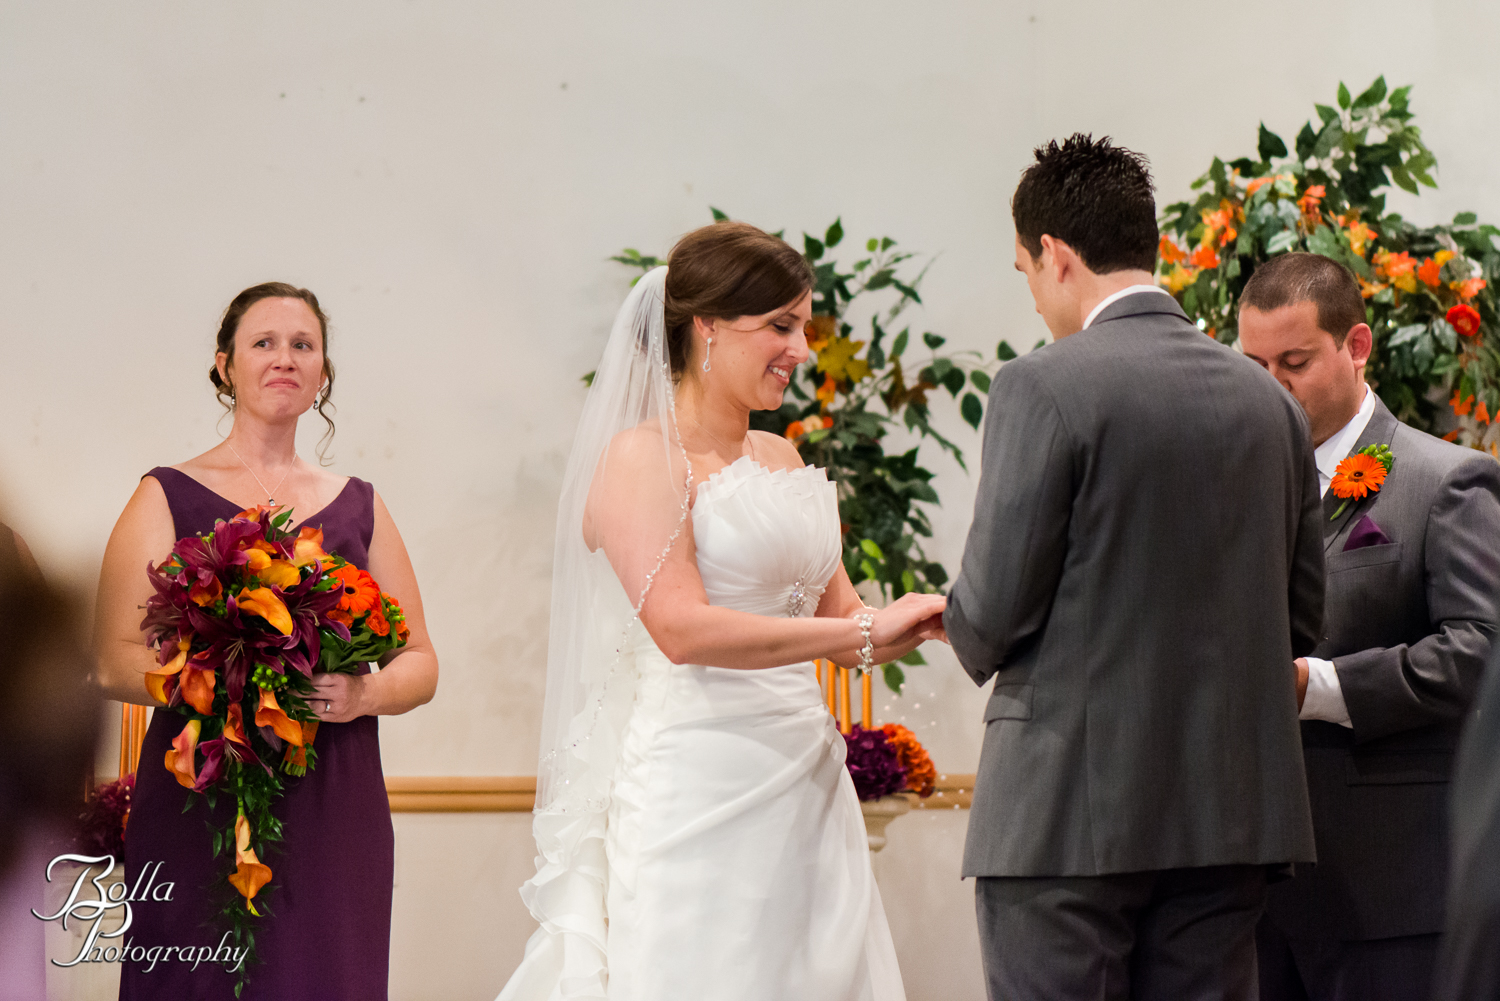 Bolla_Photography_St_Louis_wedding_photographer-0177.jpg